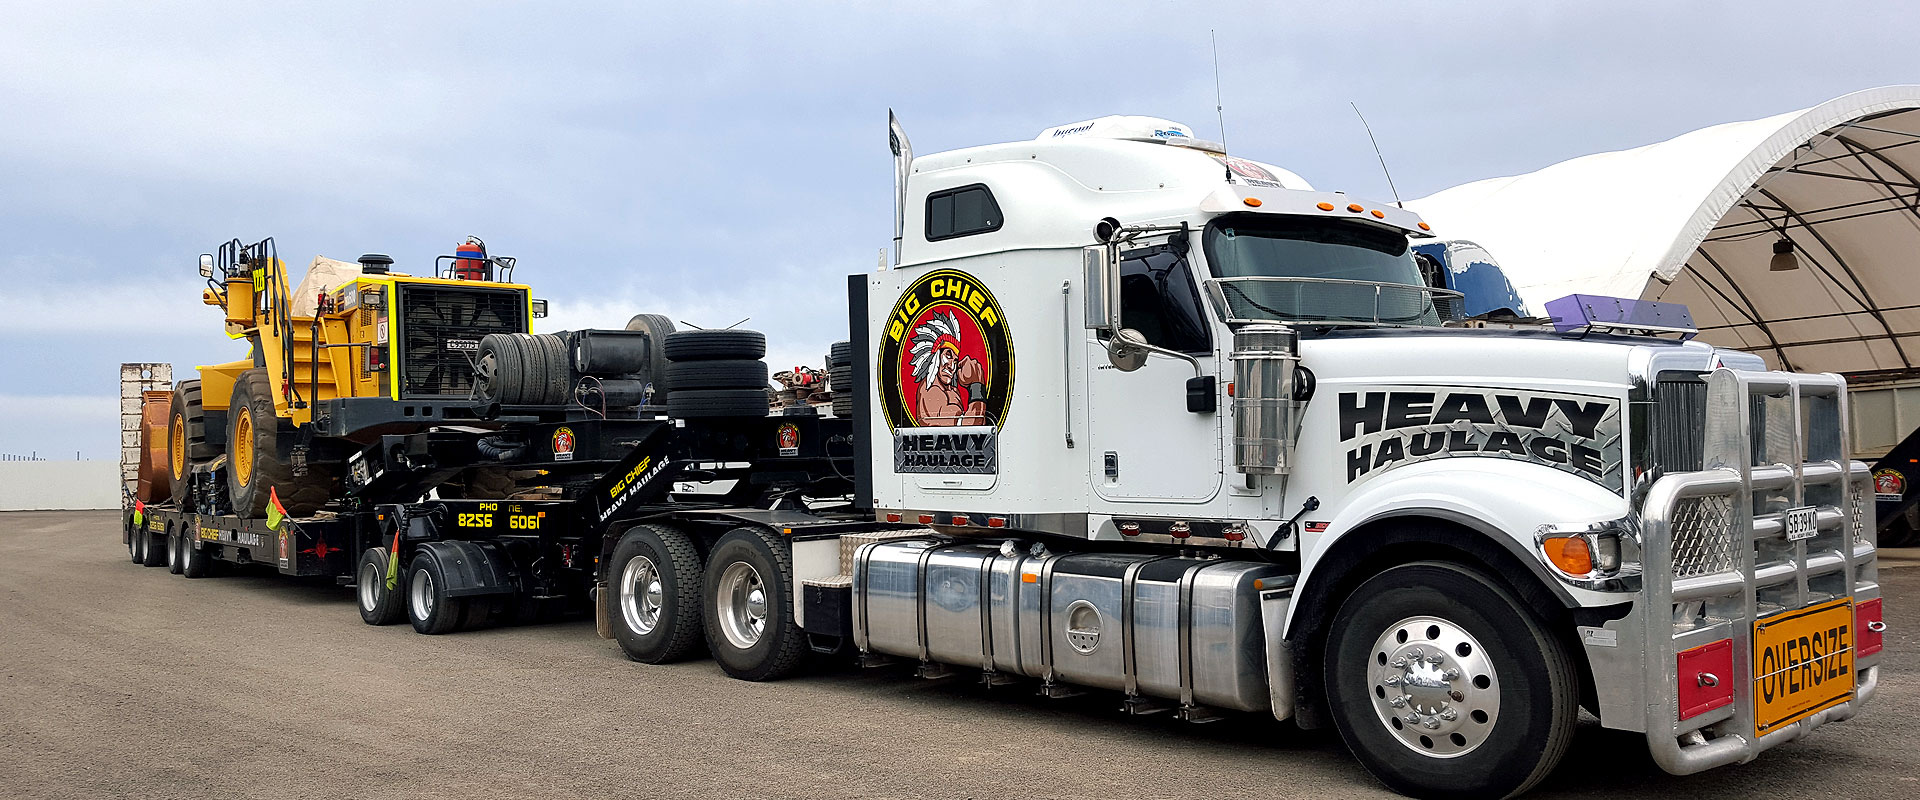 Big Chief Heavy Haulage Truck with oversize load on trailer